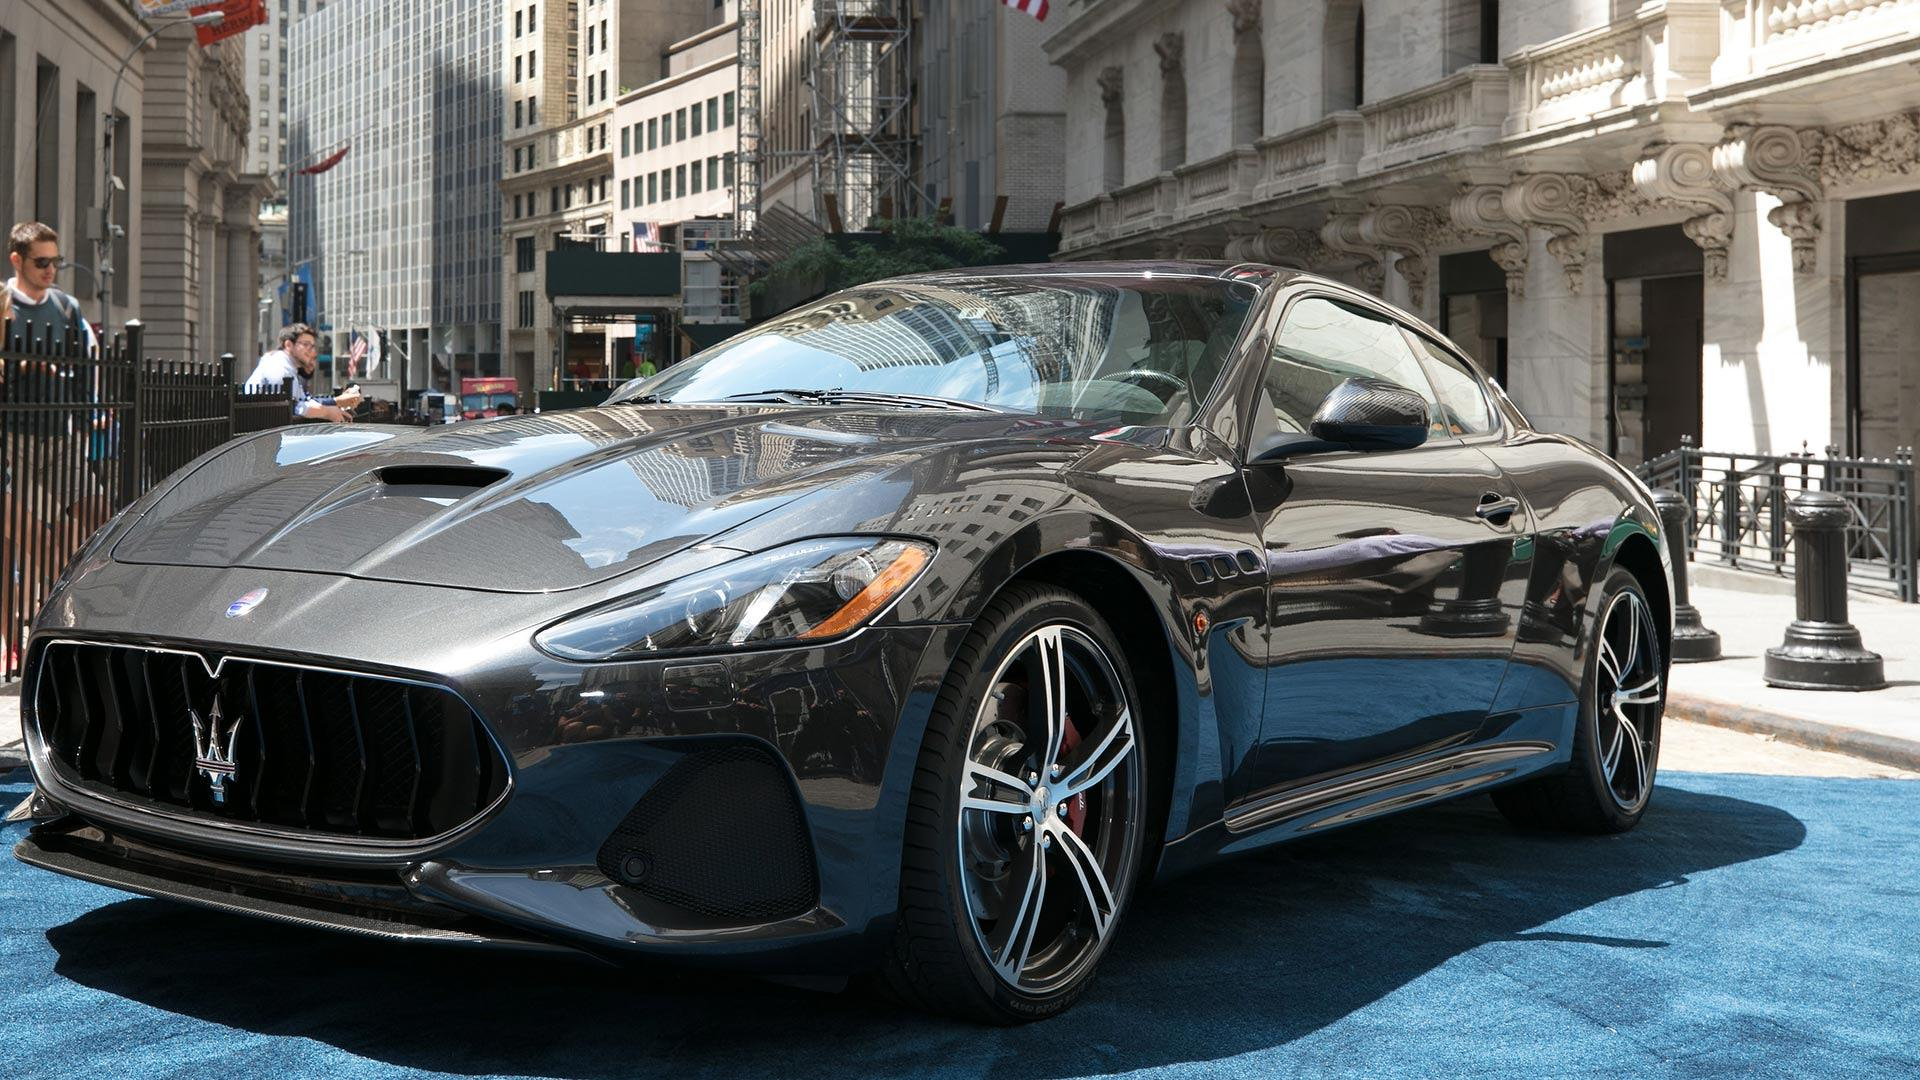 Next Gen Maserati Granturismo Coming In 2020